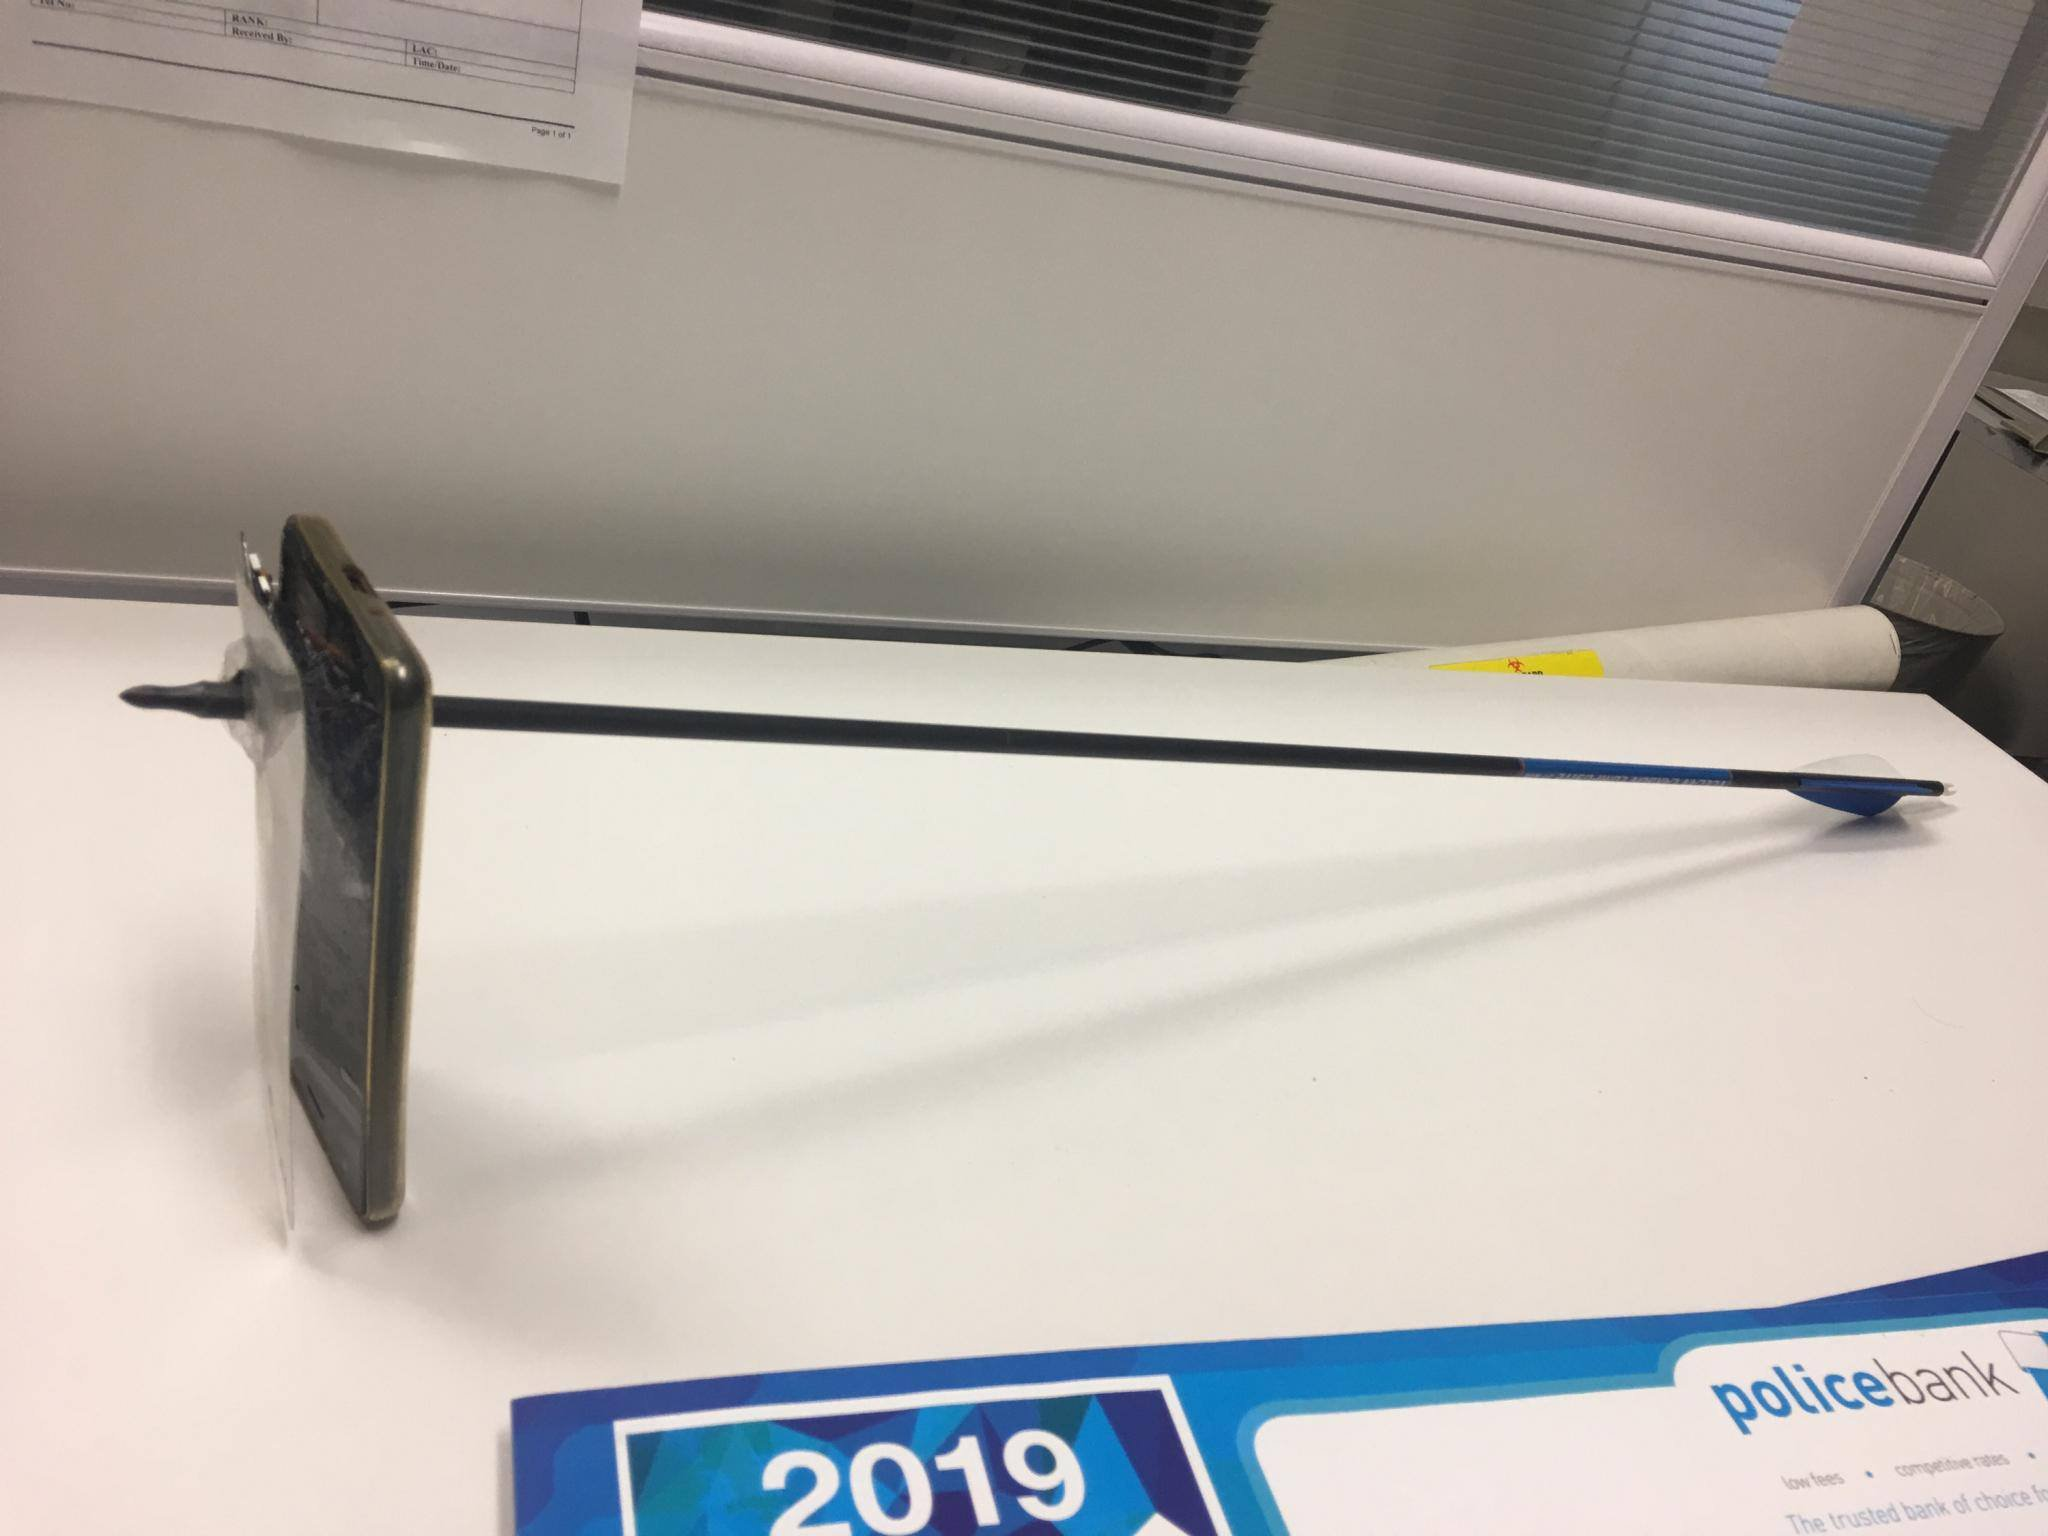 METRO GRAB FACEBOOK iPhone saves a mans life by taking an arrow that was meant for him NSW Police Force 21 hrs ?? A man has been charged after he allegedly fired a bow and arrow at another man in Nimbin today. About 9am (Wednesday 13 March 2019), a 43-year-old man drove into his driveway on Nimbin Road and got out of his car. He noticed another man, who is known to him, standing outside his property allegedly armed with a bow and arrow. The resident held up his mobile phone to take a photo of the armed man who then engaged the bow and was ready to fire. It???s alleged the man fired the arrow at the resident which pierced through the man???s mobile phone causing the phone to hit him in the chin. It left a small laceration that didn???t require medical treatment. Officers from Richmond Police District were called and arrested a 39-year-old man at the scene. He was taken to Nimbin Police Station where he was charged with armed with intent to commit an indictable offence, assault occasioning actual bodily harm and malicious damage. He was granted conditional bail to appear in Lismore Local Court on Monday 15 April 2019. https://www.facebook.com/nswpoliceforce/posts/10156626157561185